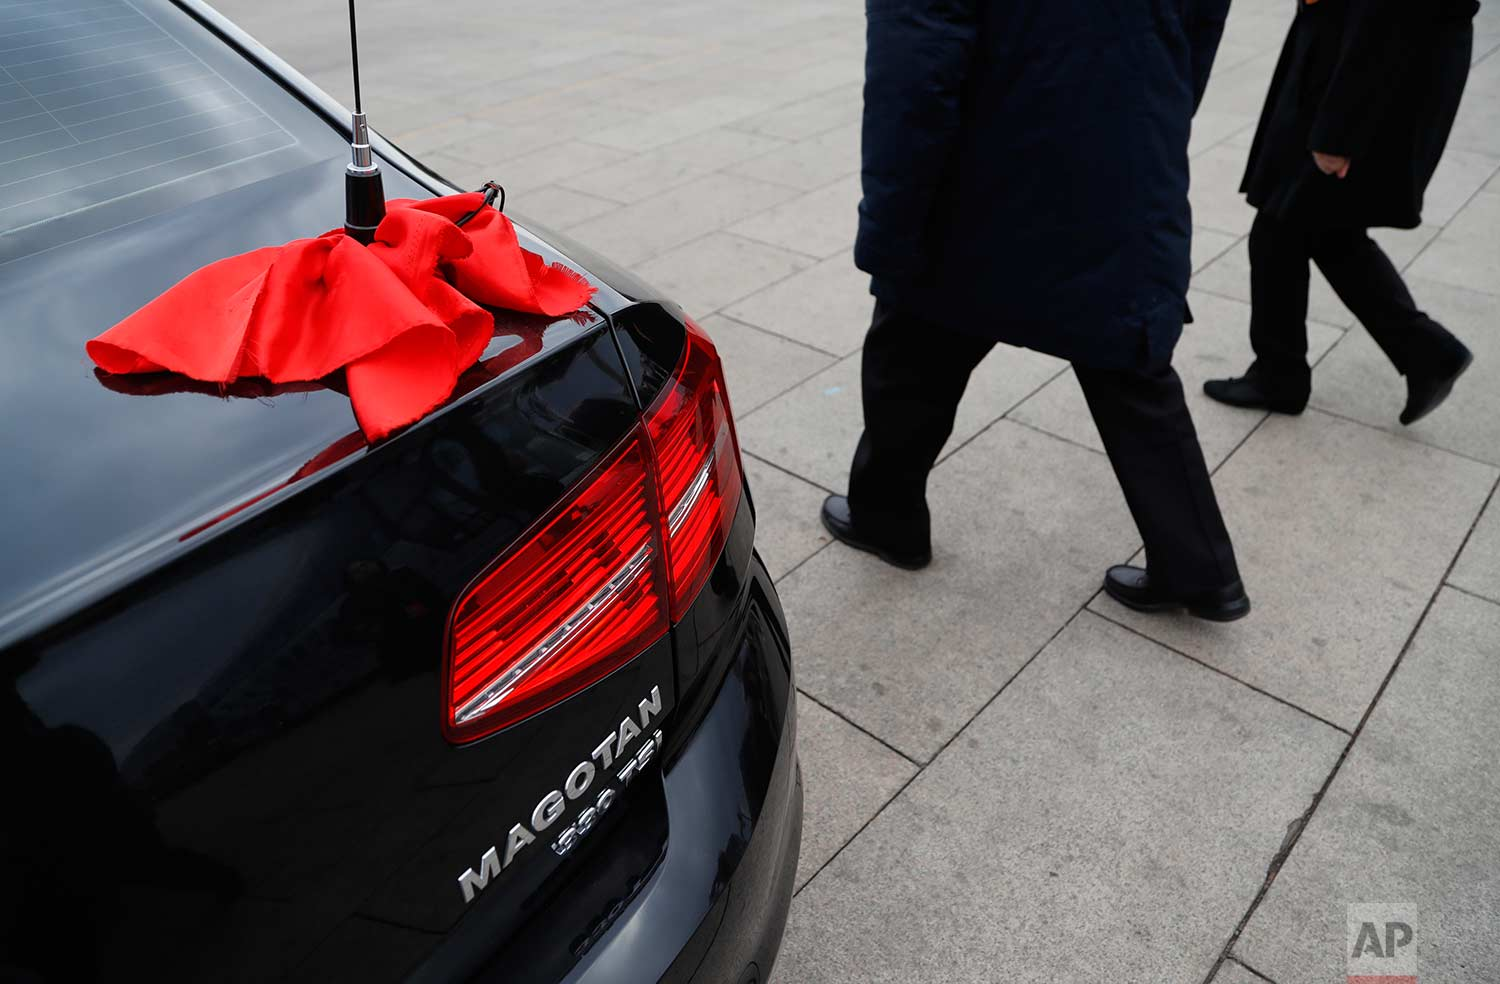 In this Thursday, March 15, 2018 photo, red ribbon is tied to an antenna of an escort car parked outside The Great Hall of People during the closing session of the Chinese People's Political Consultative Conference (CPPCC) at the Great Hall of the People in Beijing. (AP Photo/Aijaz Rahi)